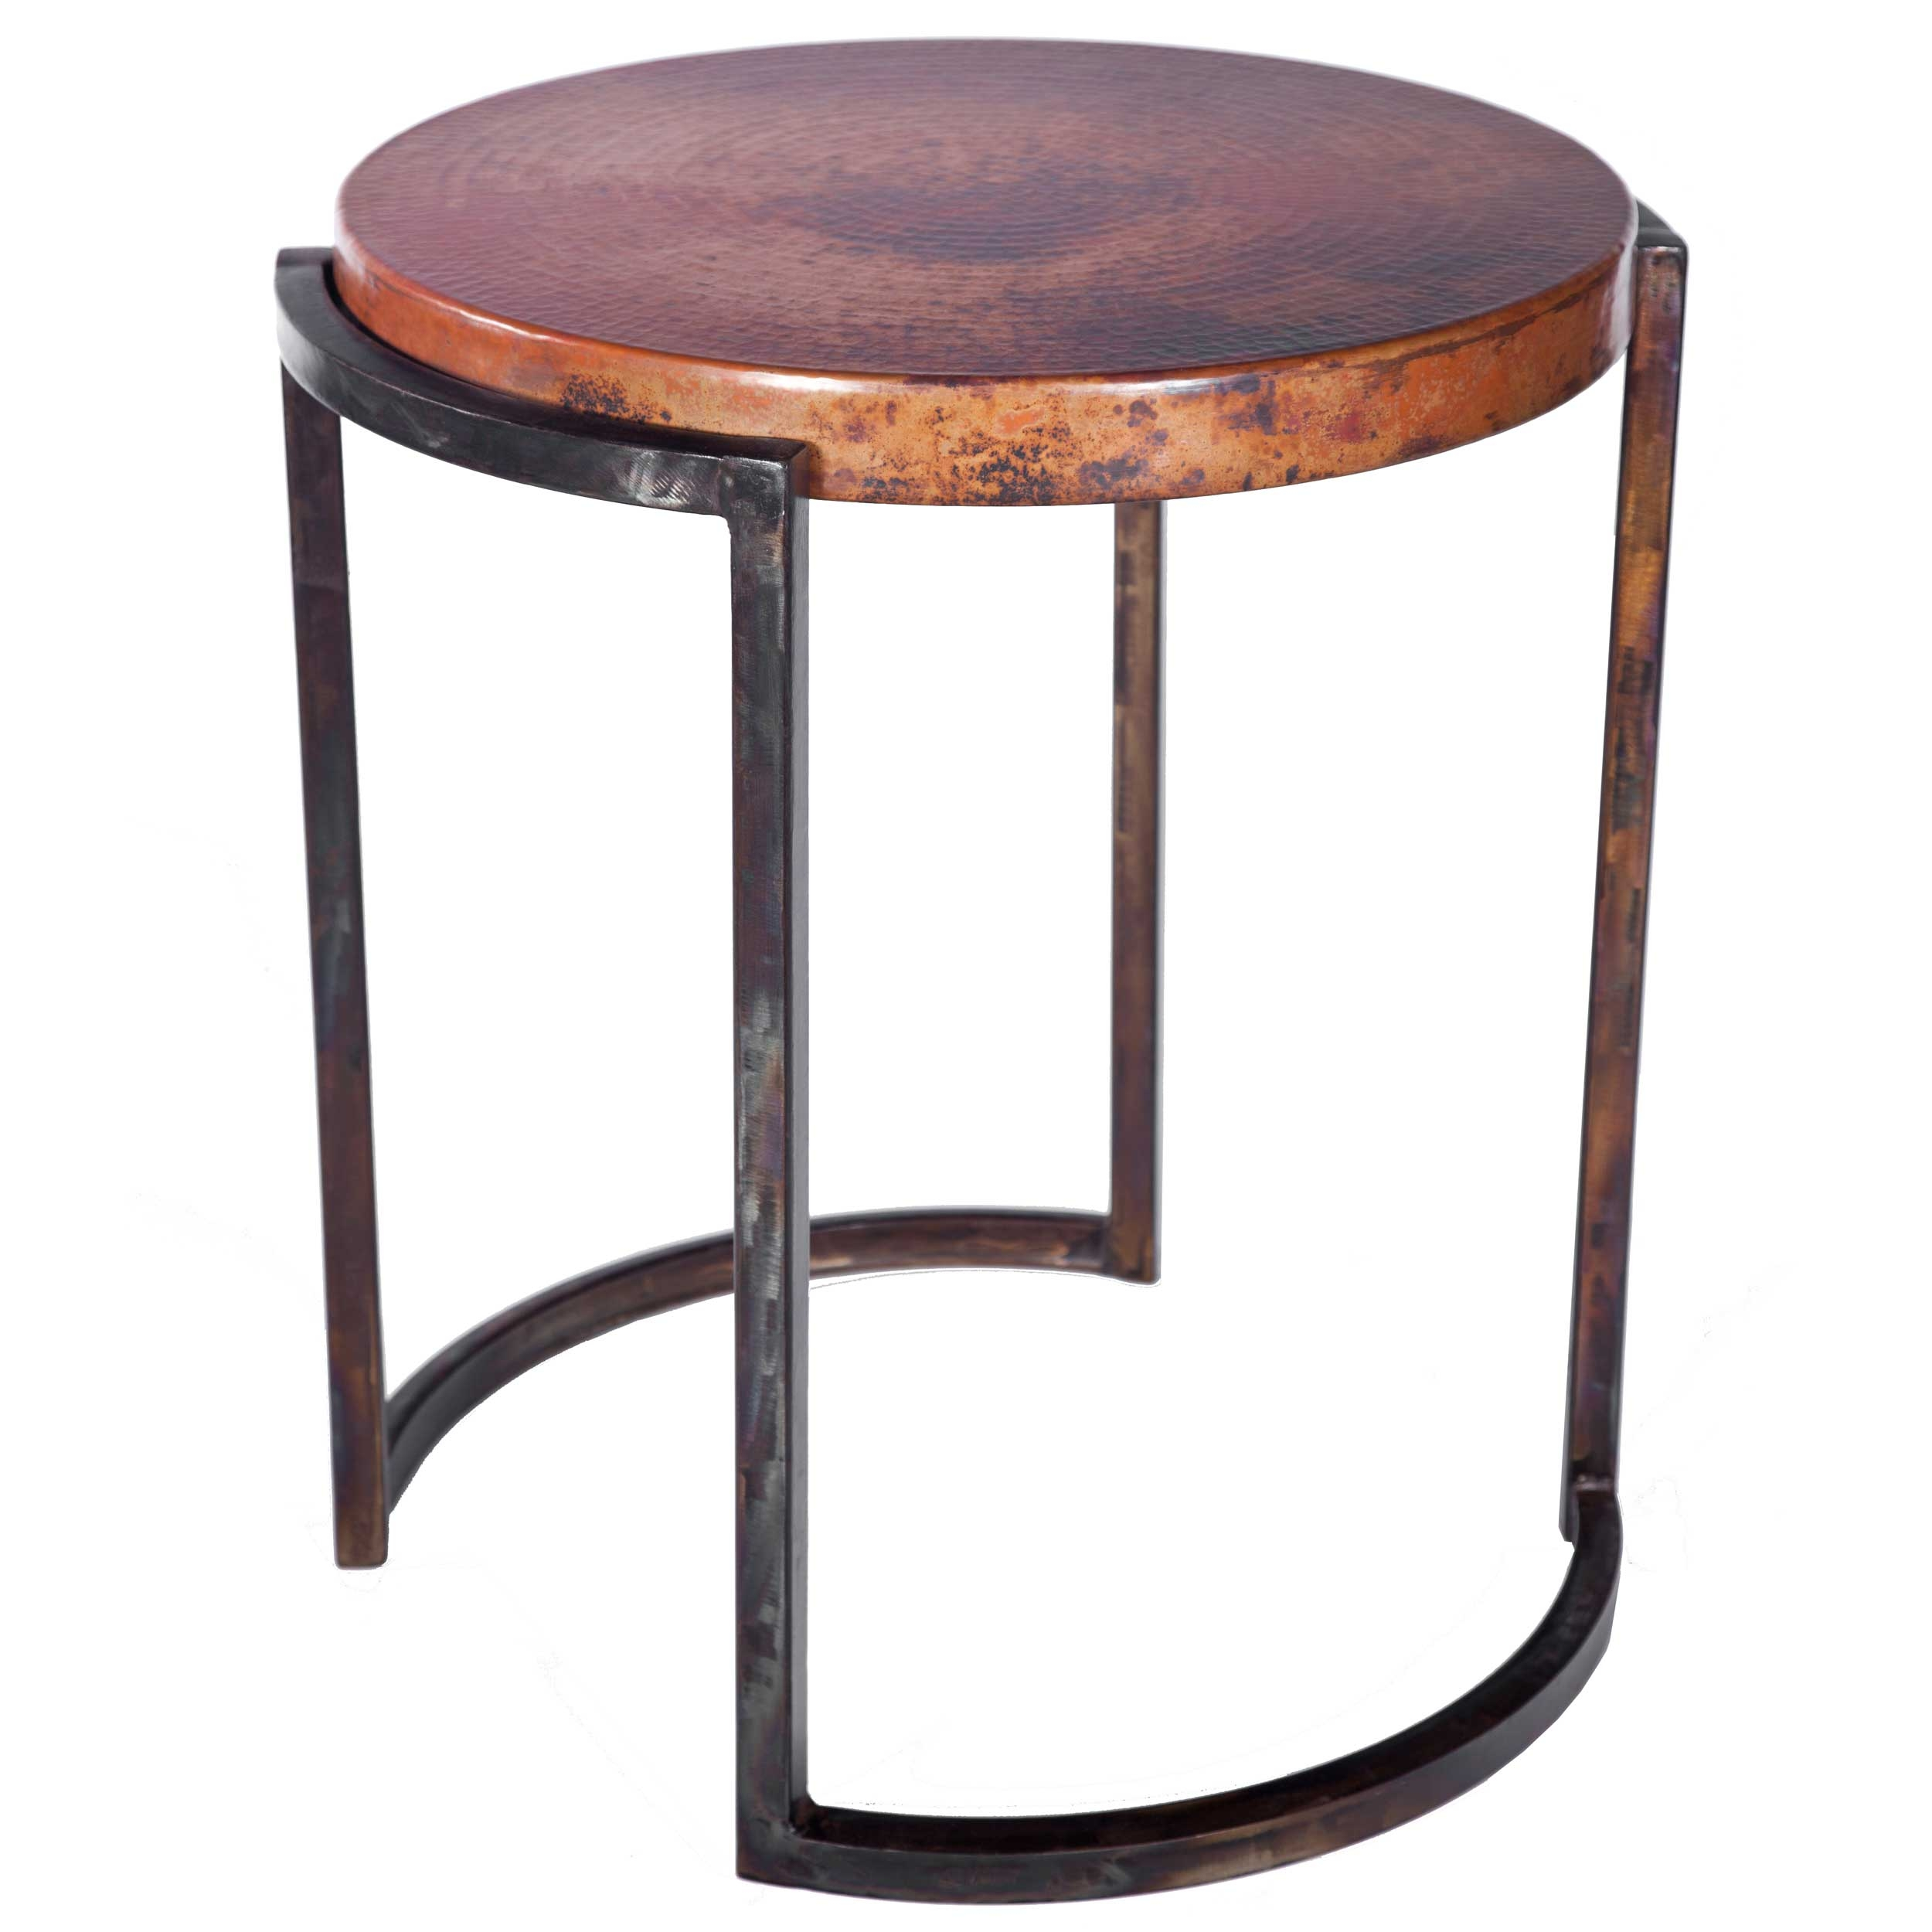 Upper Avenue Iron End Table With Copper Top. Task Force Tool Box 5 Drawer. Four Drawer Filing Cabinet. Help Desk Operator Duties And Responsibilities. Coffee Table Ottoman With Storage. Wood Slab Desk Tops. It Front Desk. Laundry Tables. Coner Desk